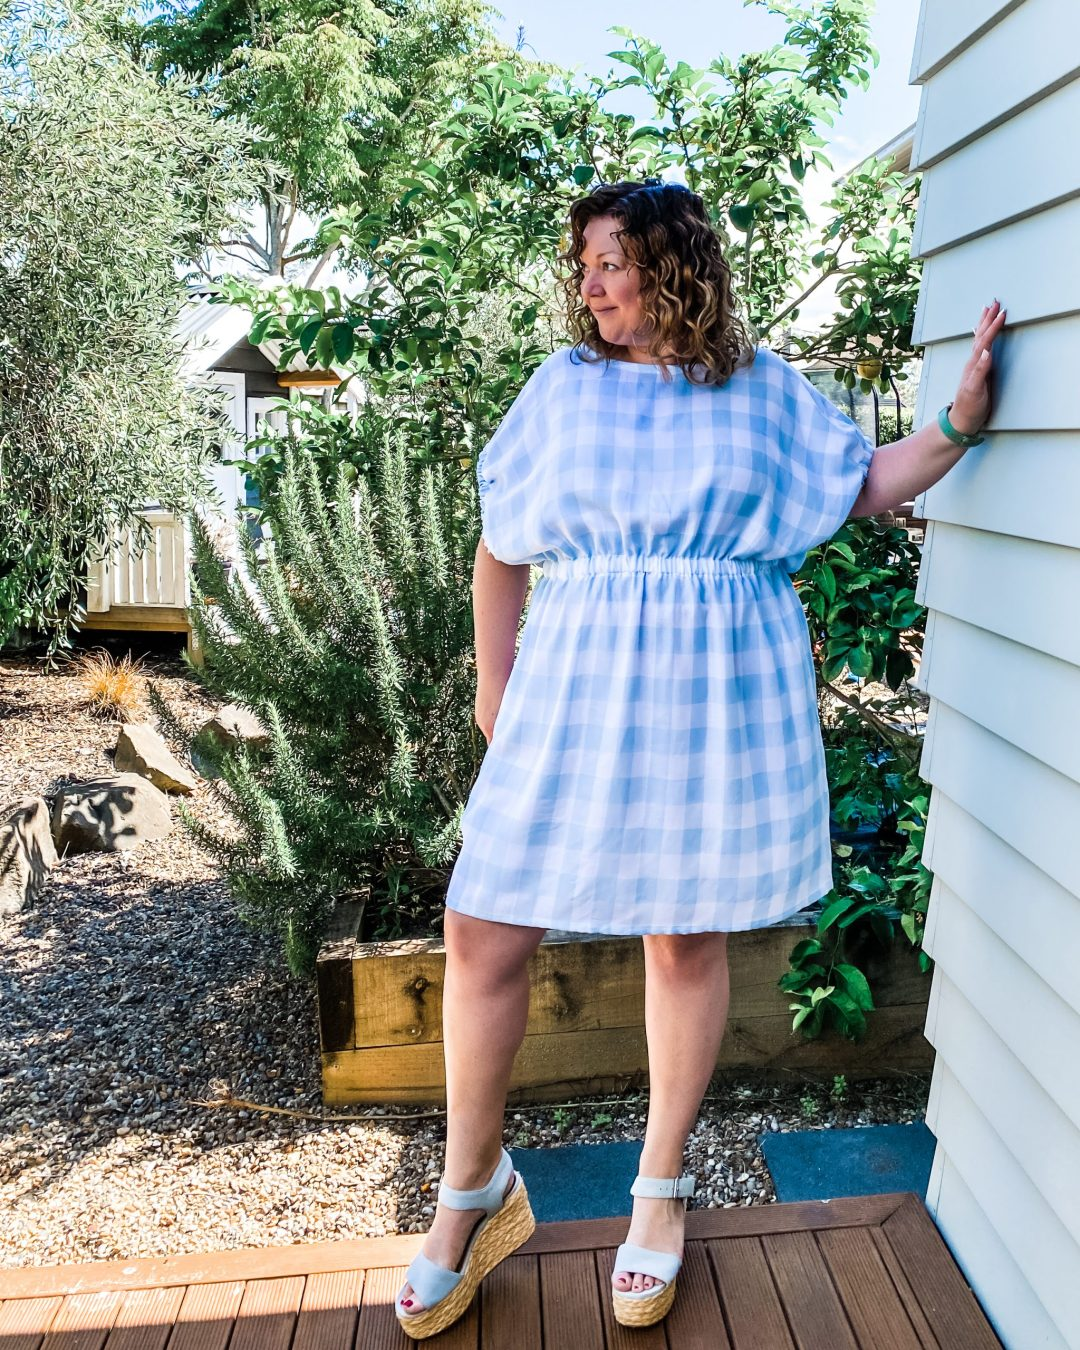 Shameka Dress Pattern - in blue gingham fabric - made by oh sew fearless